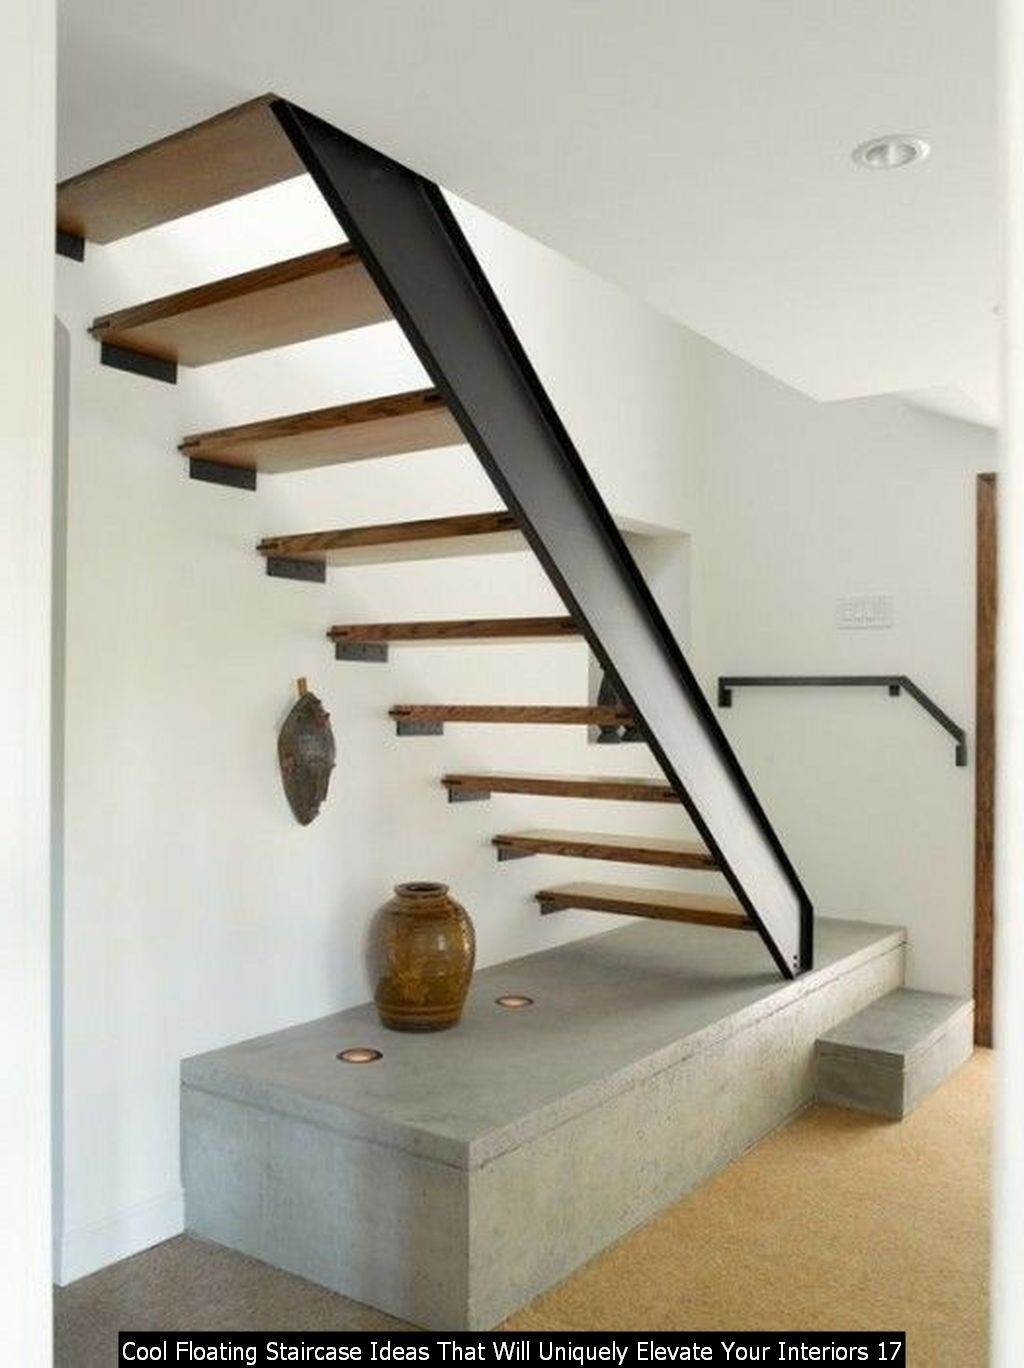 Cool Floating Staircase Ideas That Will Uniquely Elevate Your Interiors 17